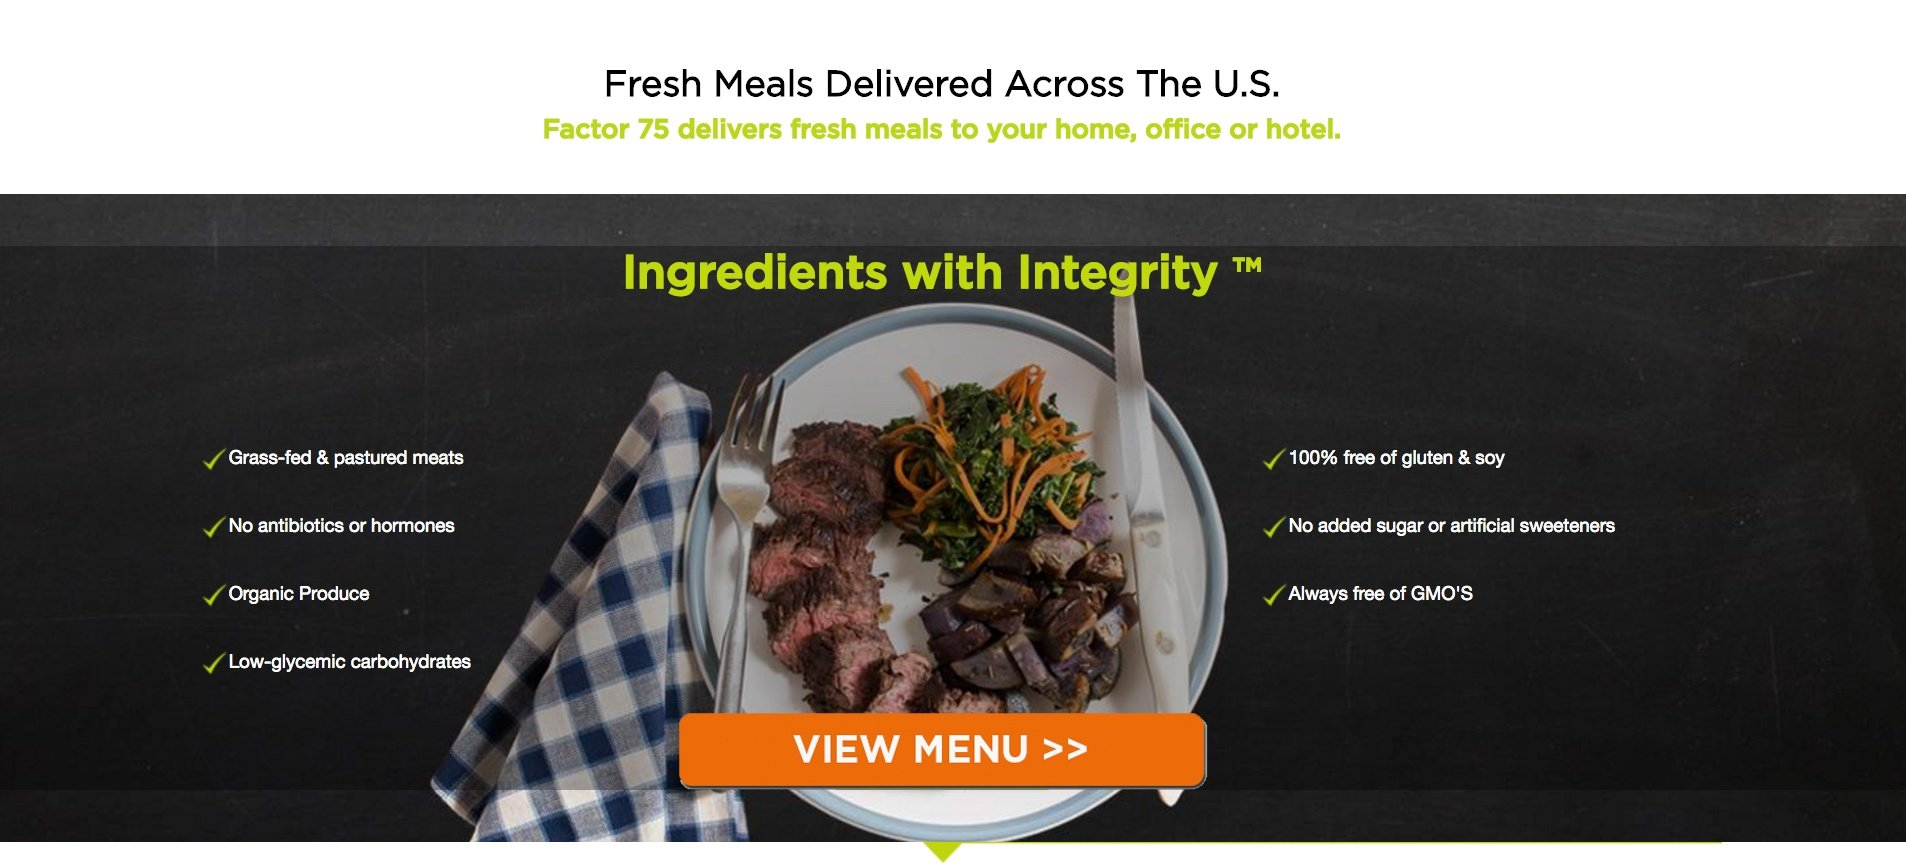 ags-landing-page-view-menu-ingredients-integrity.jpg